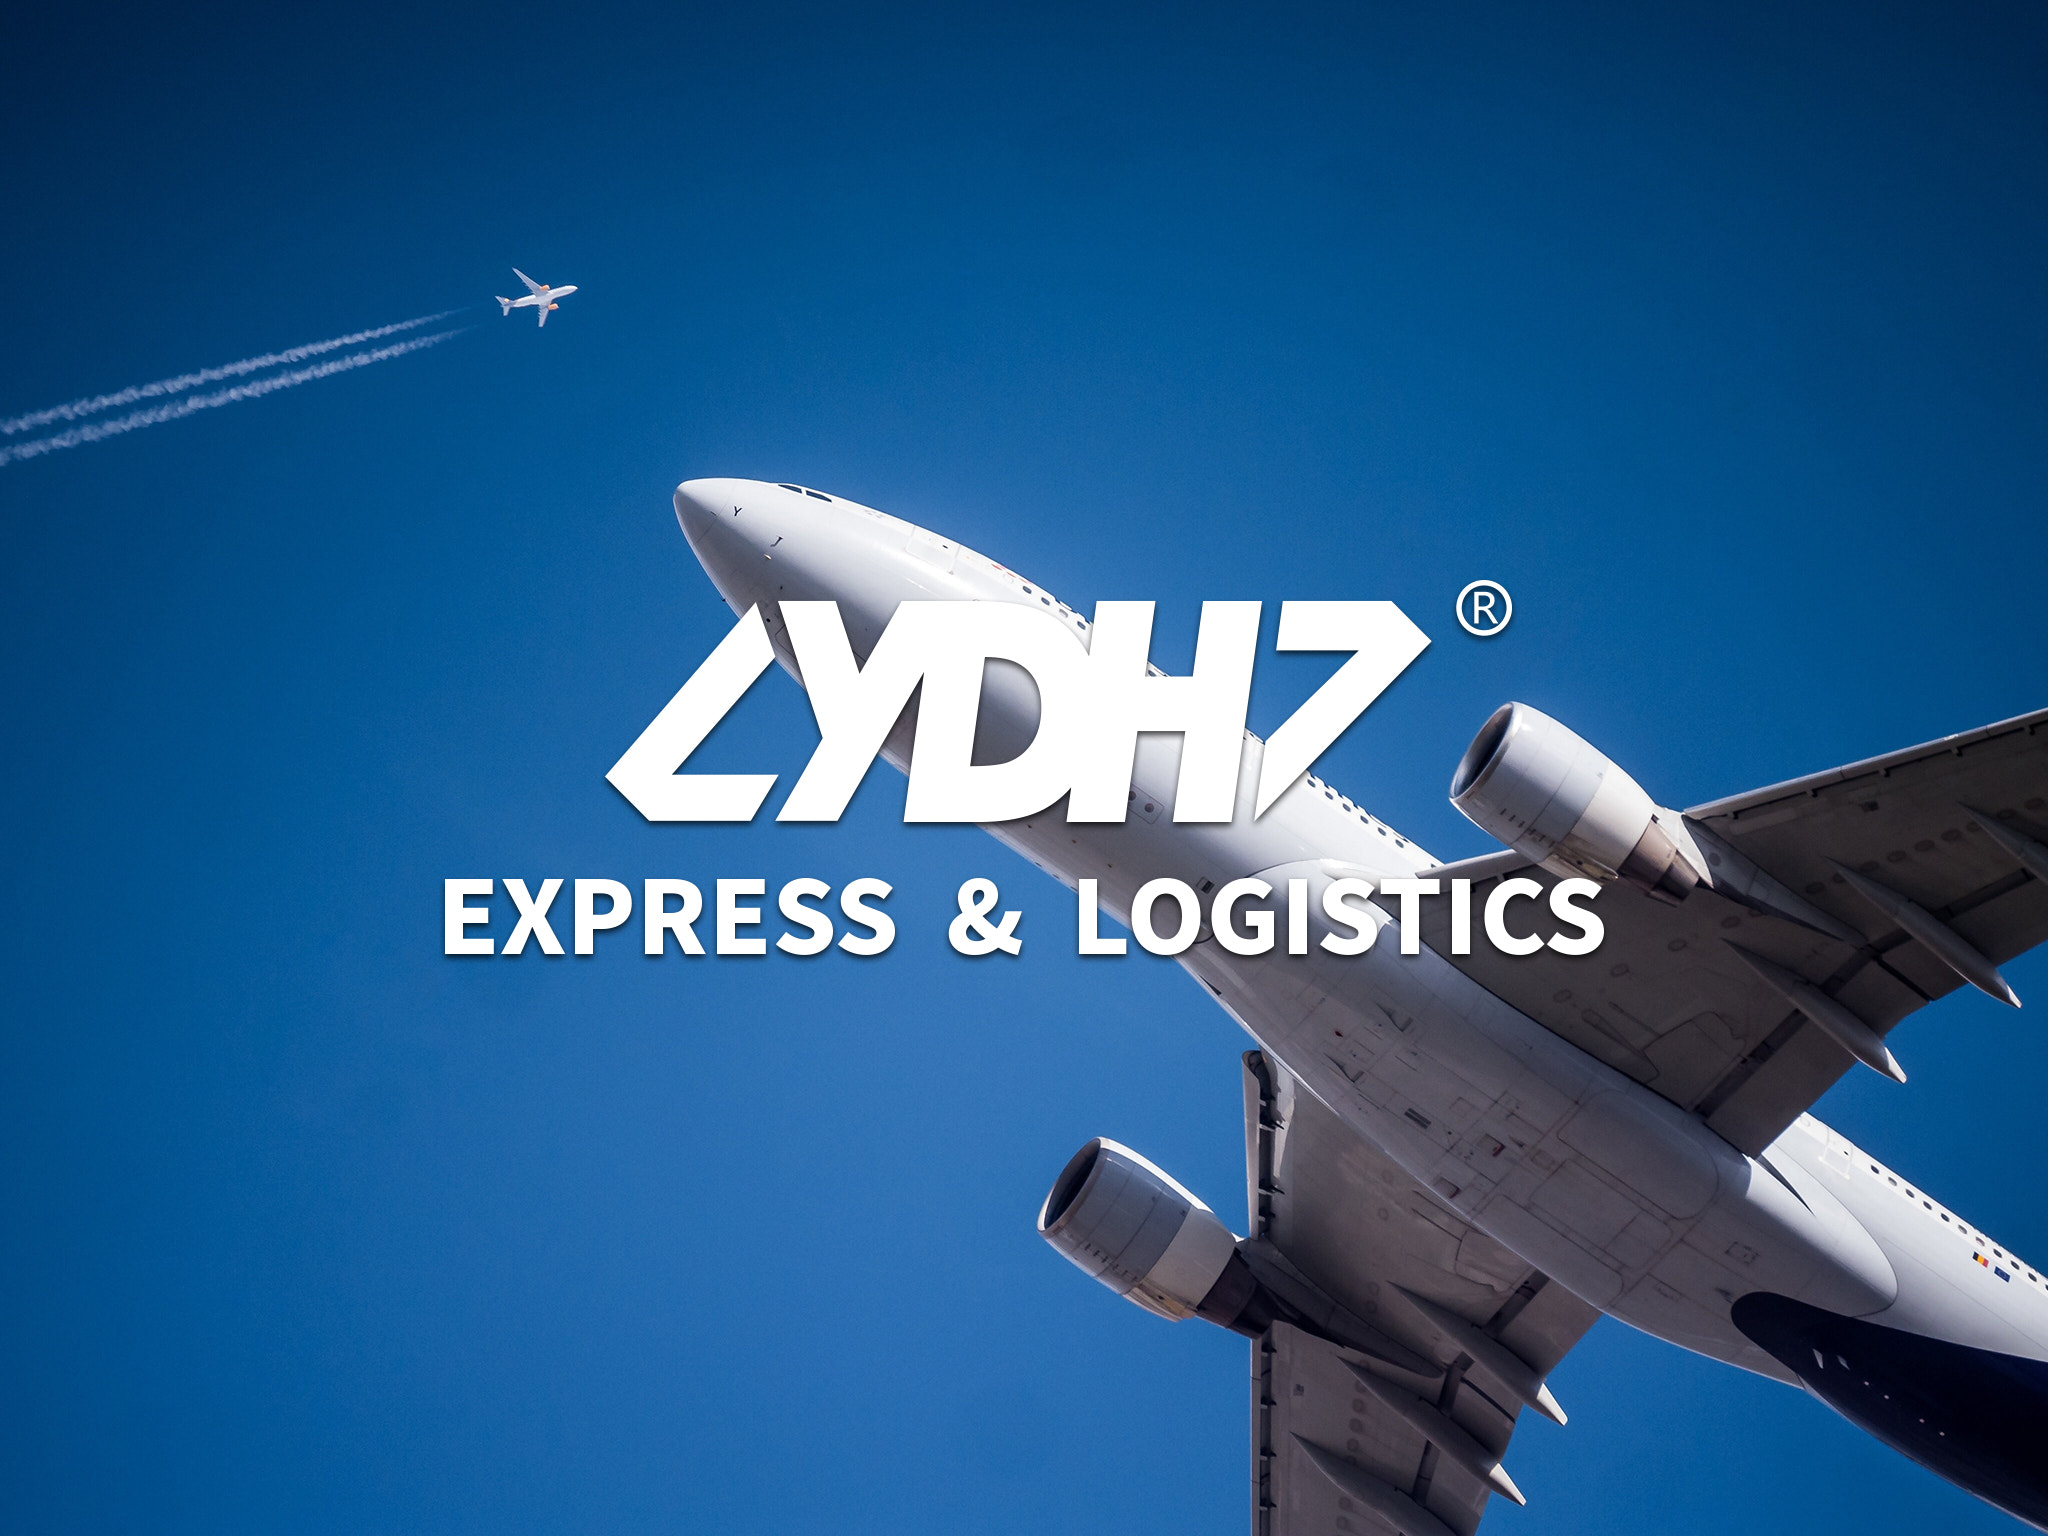 YDH delivers the package to your location